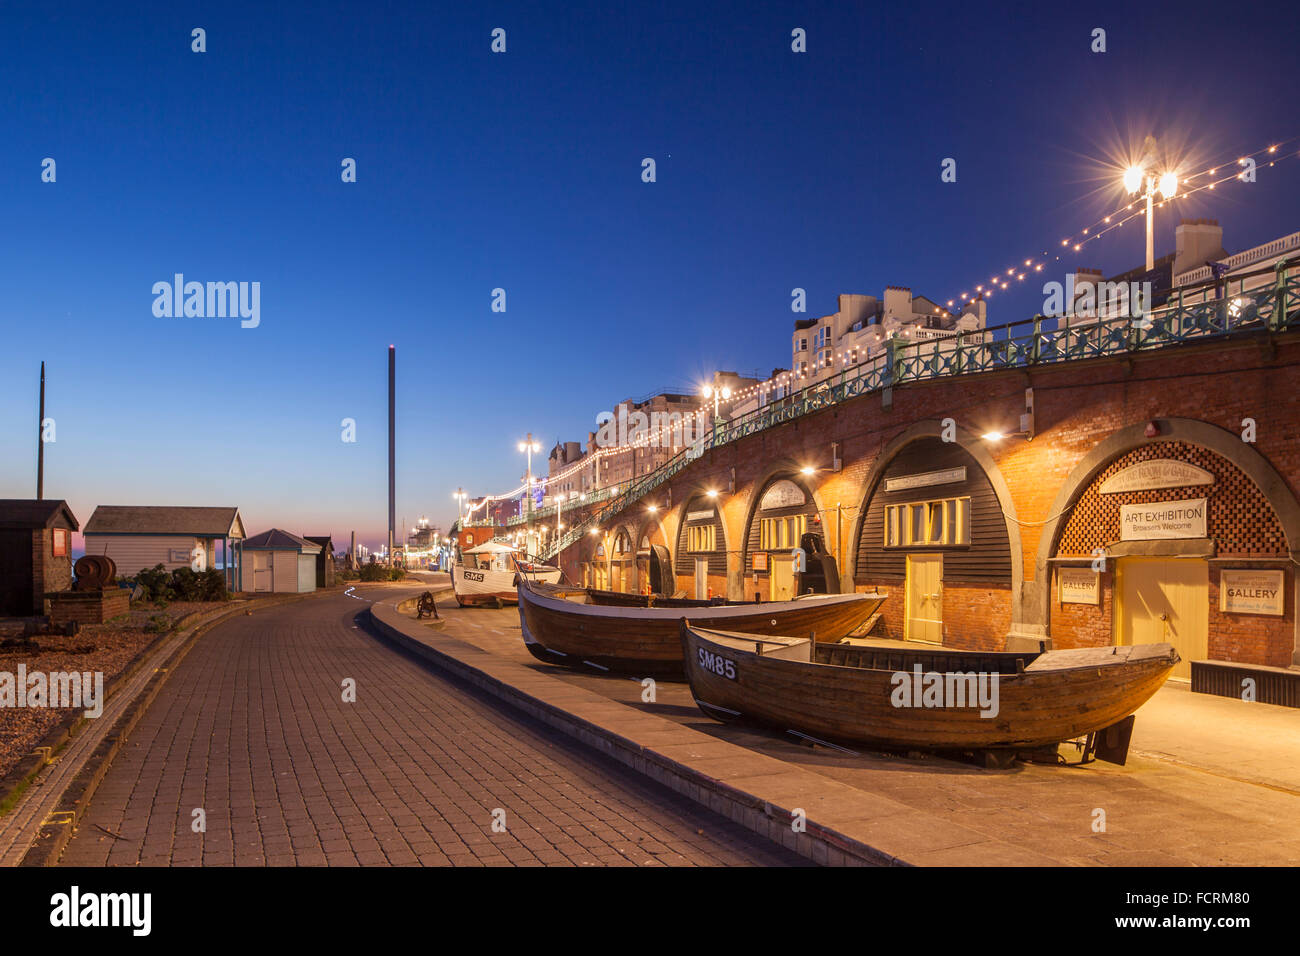 Winter evening at Fishing Museum on Brighton seafront, East Sussex, England. - Stock Image